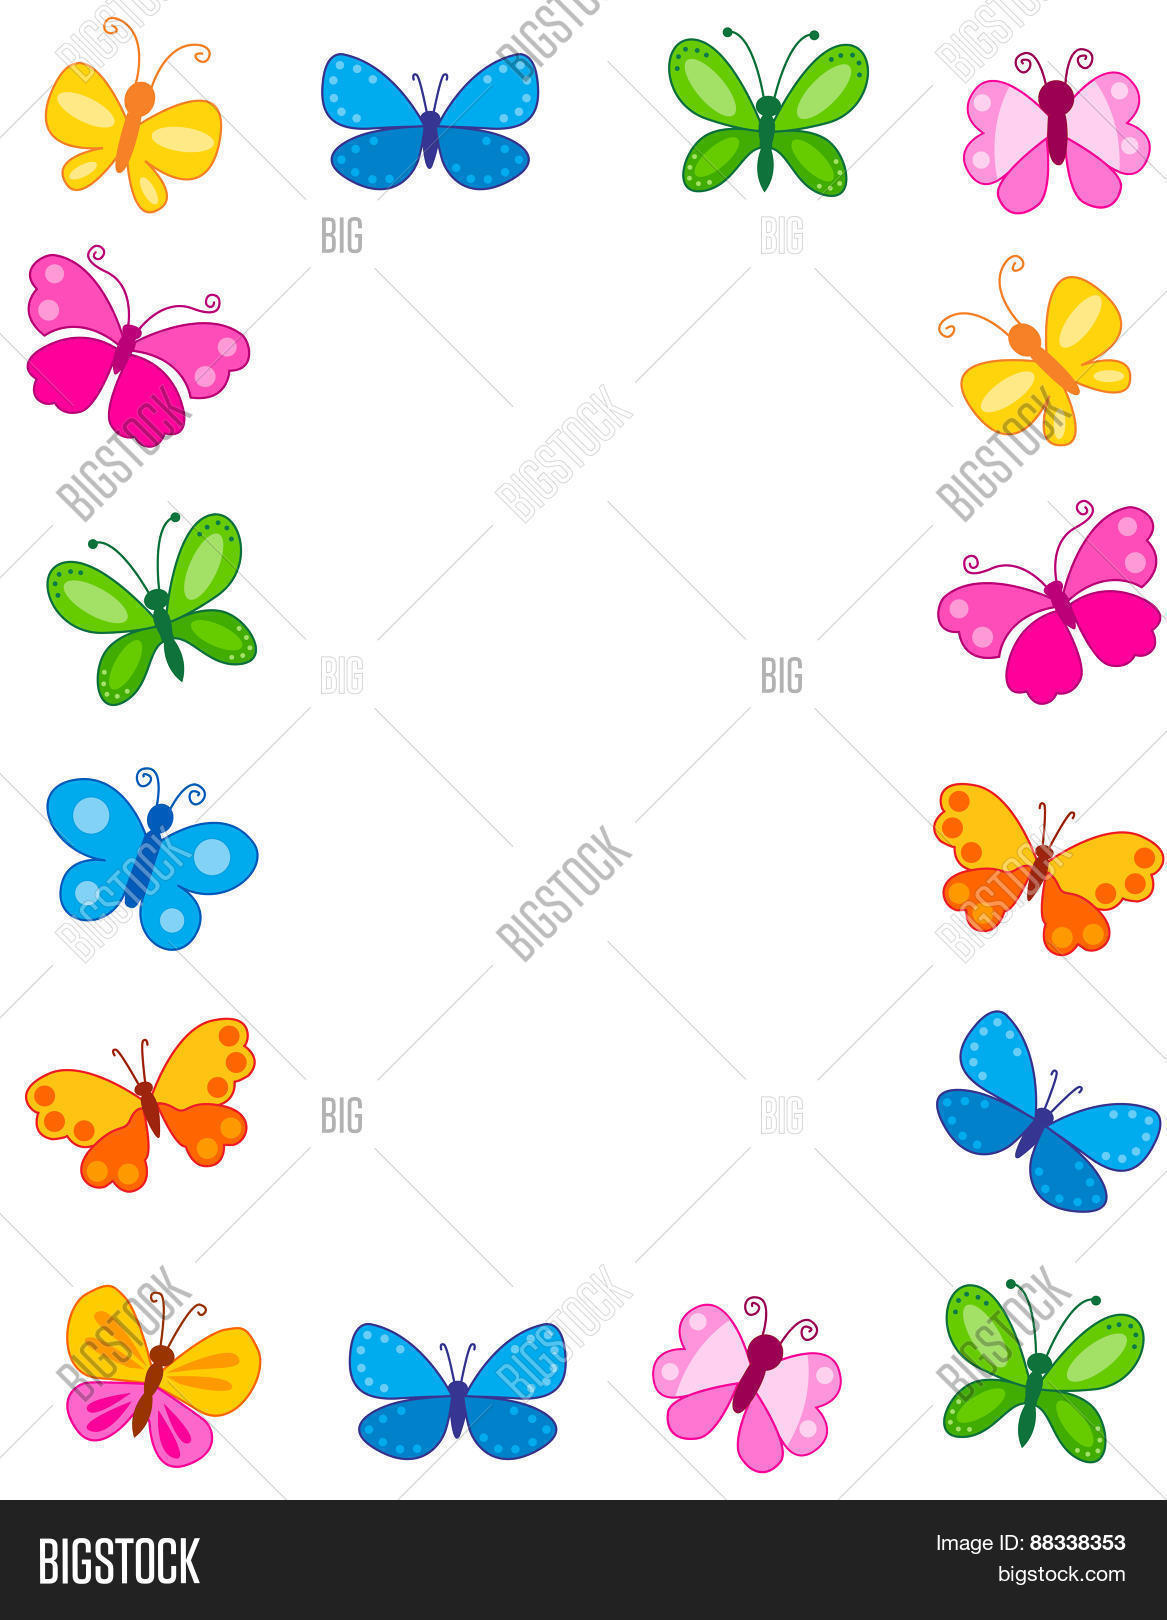 Butterfly Frame / Image & Photo (Free Trial) | Bigstock